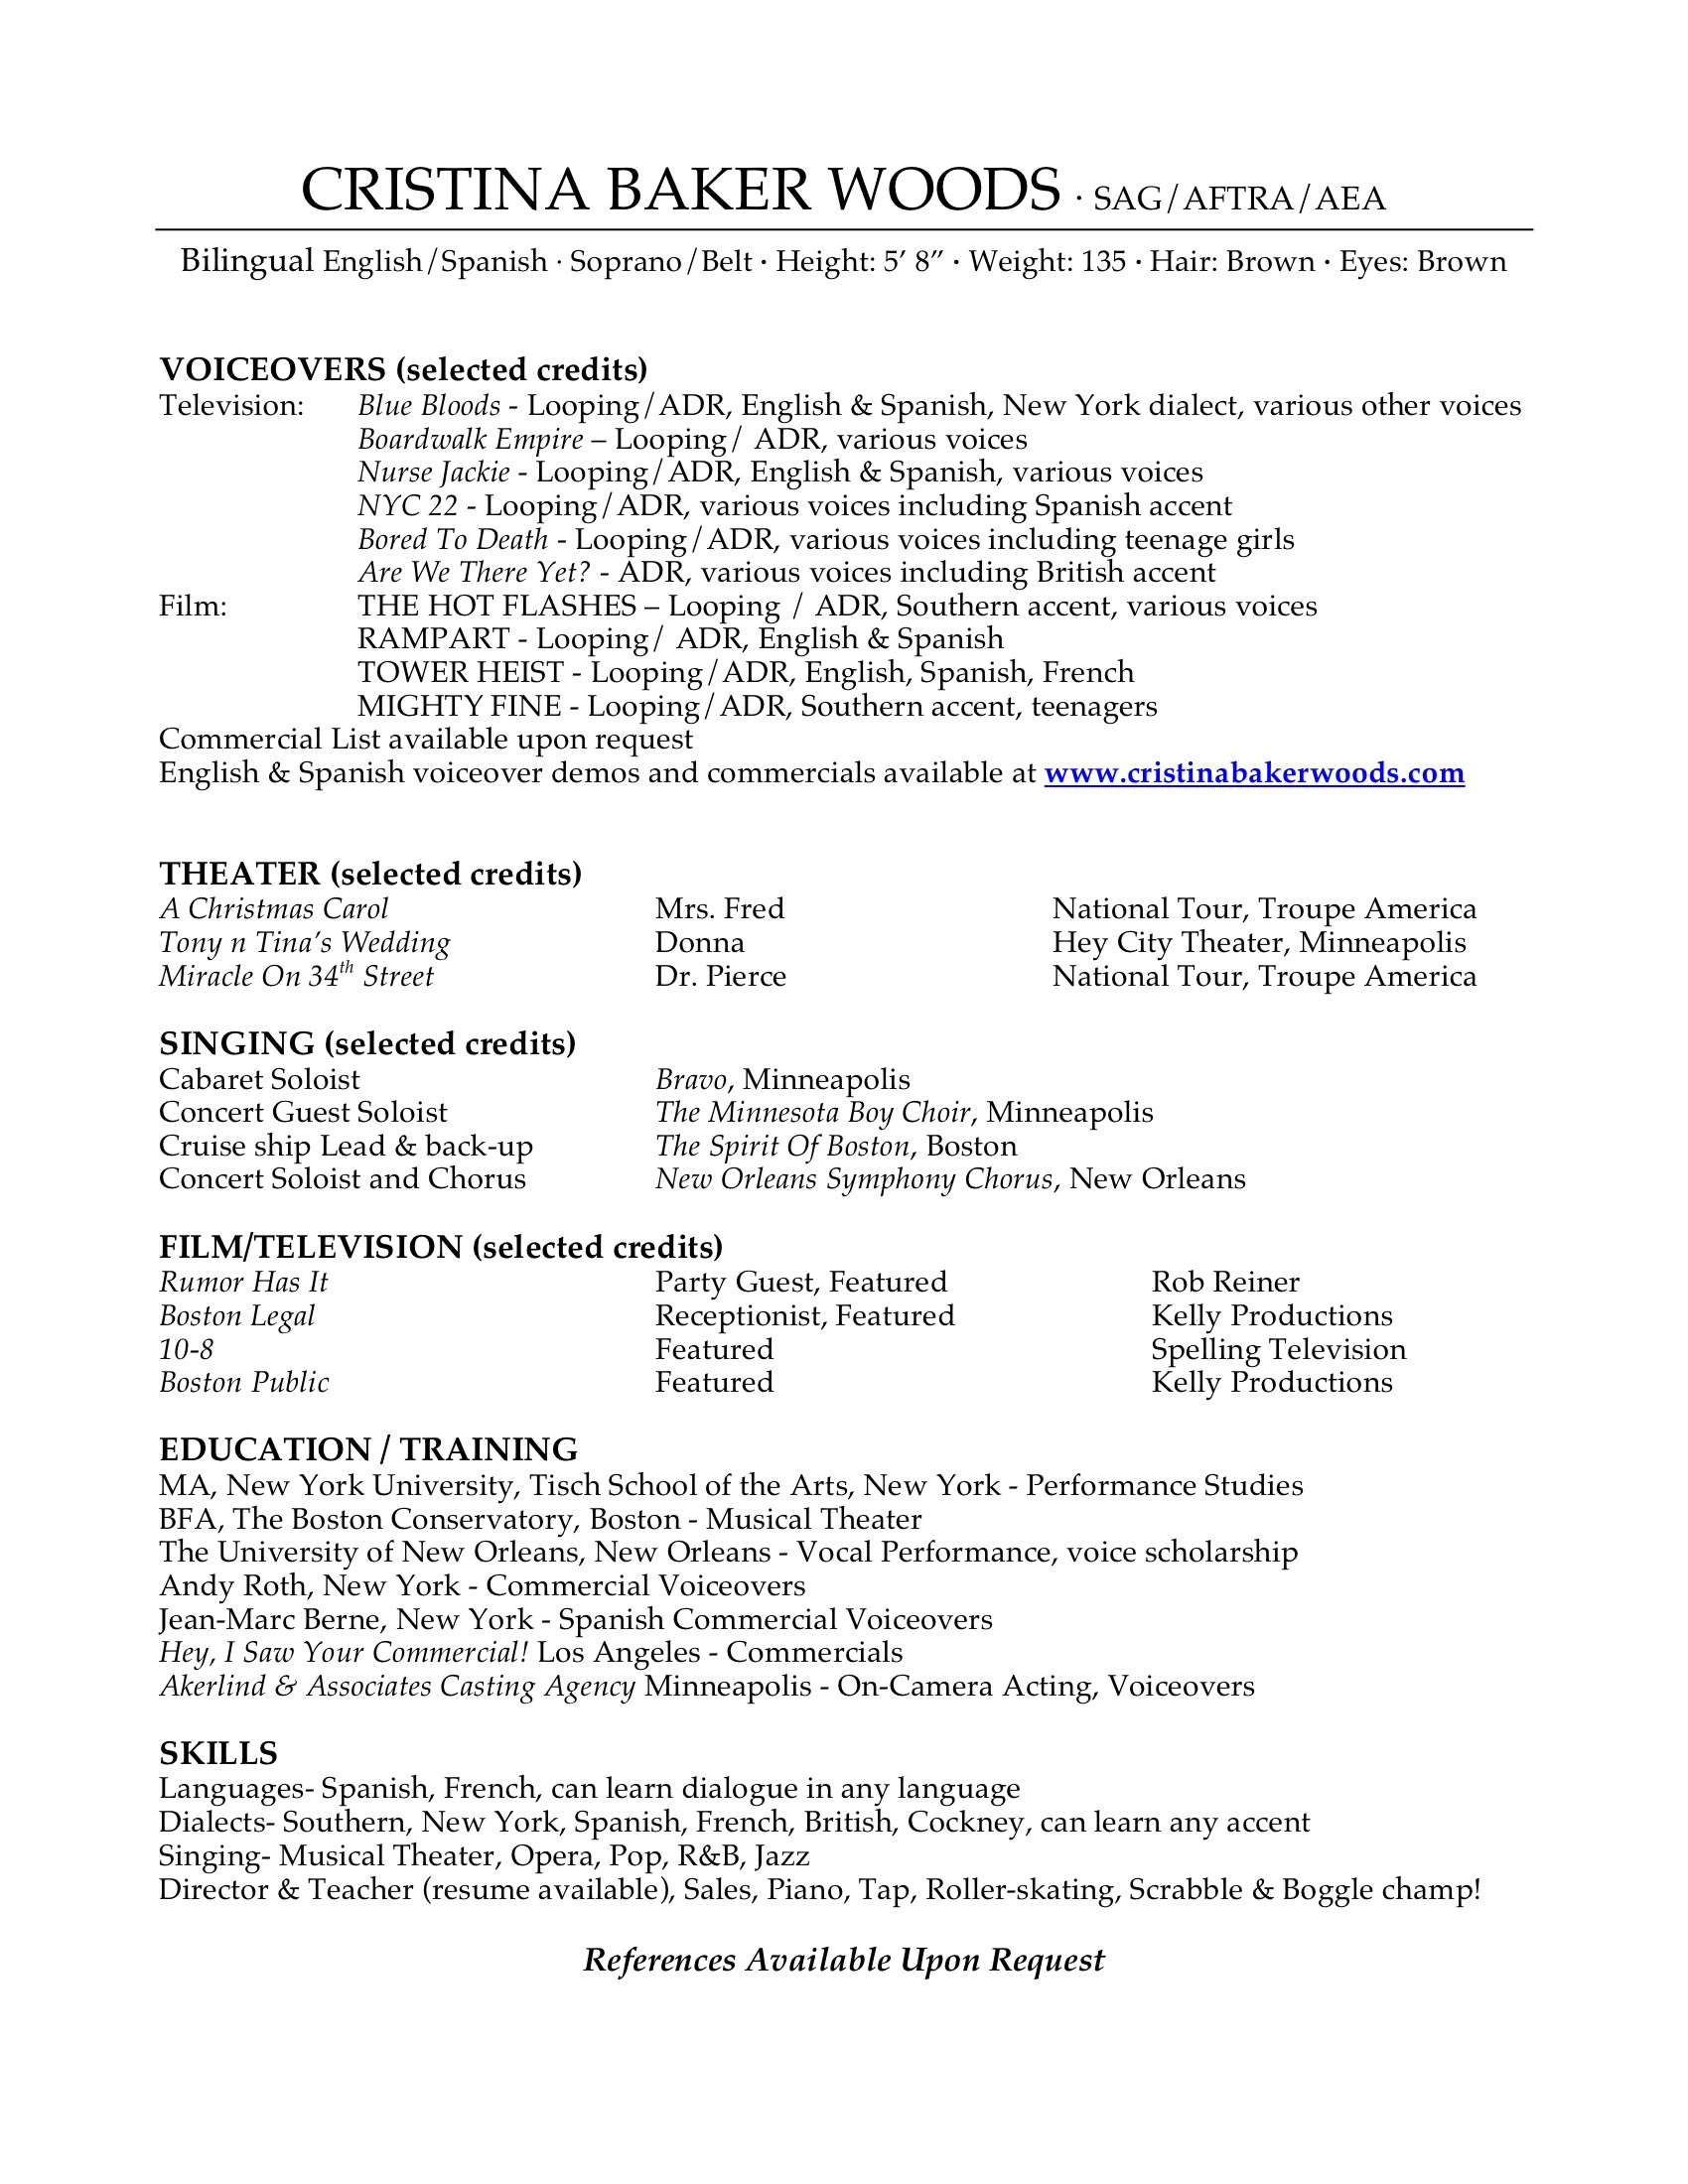 singer resume sample